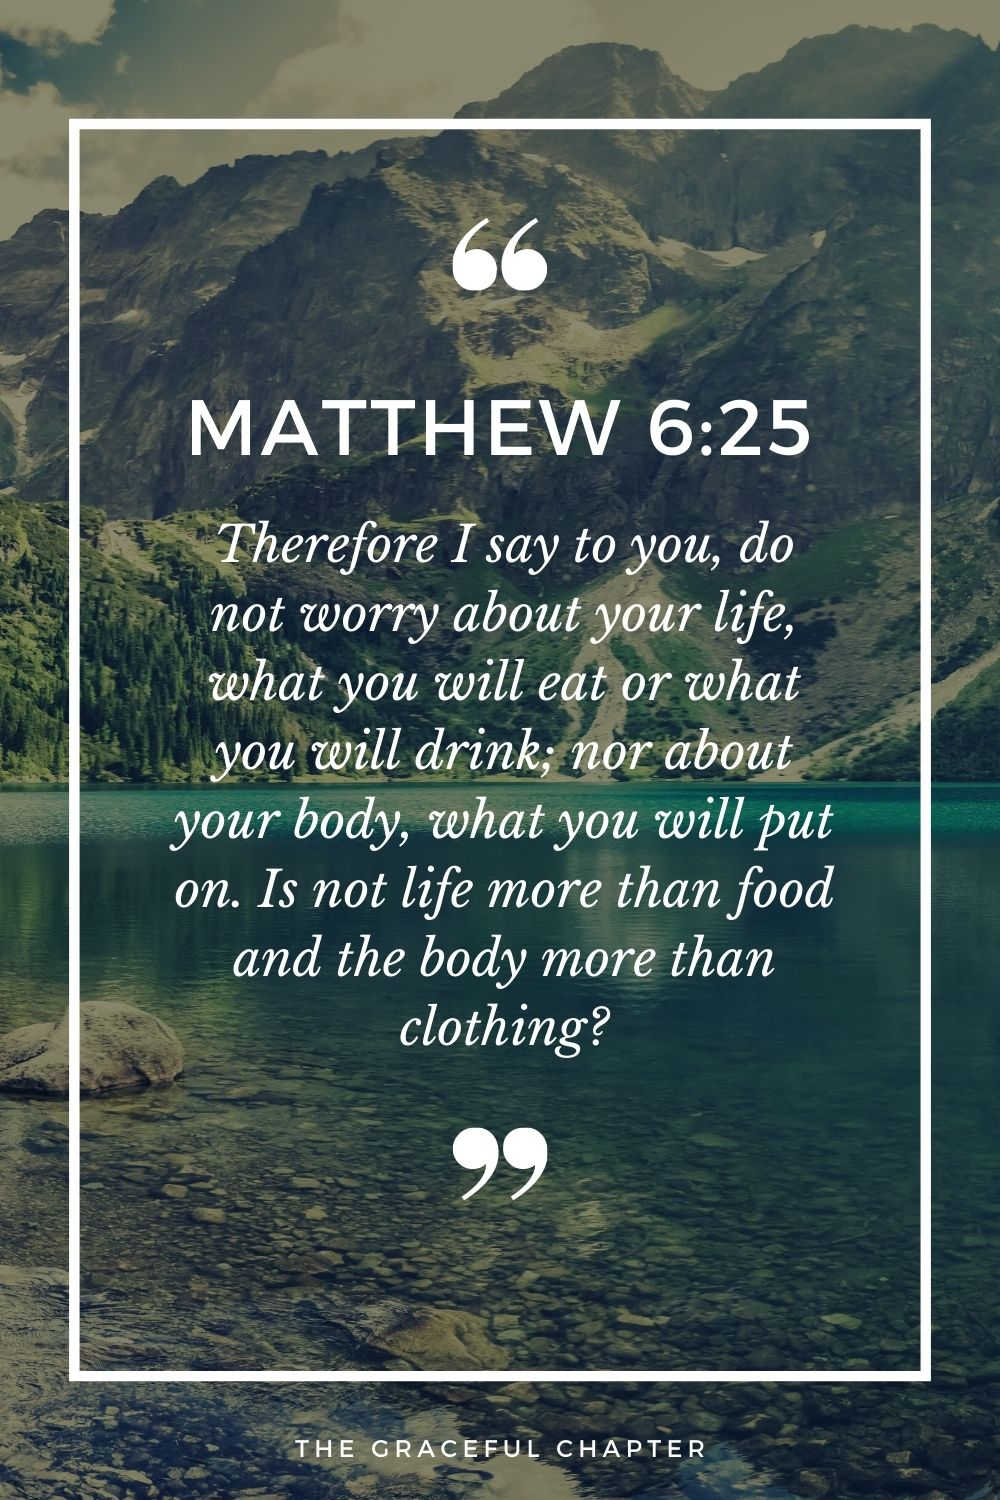 Therefore I say to you, do not worry about your life, what you will eat or what you will drink; nor about your body, what you will put on. Is not life more than food and the body more than clothing? Matthew 6:25